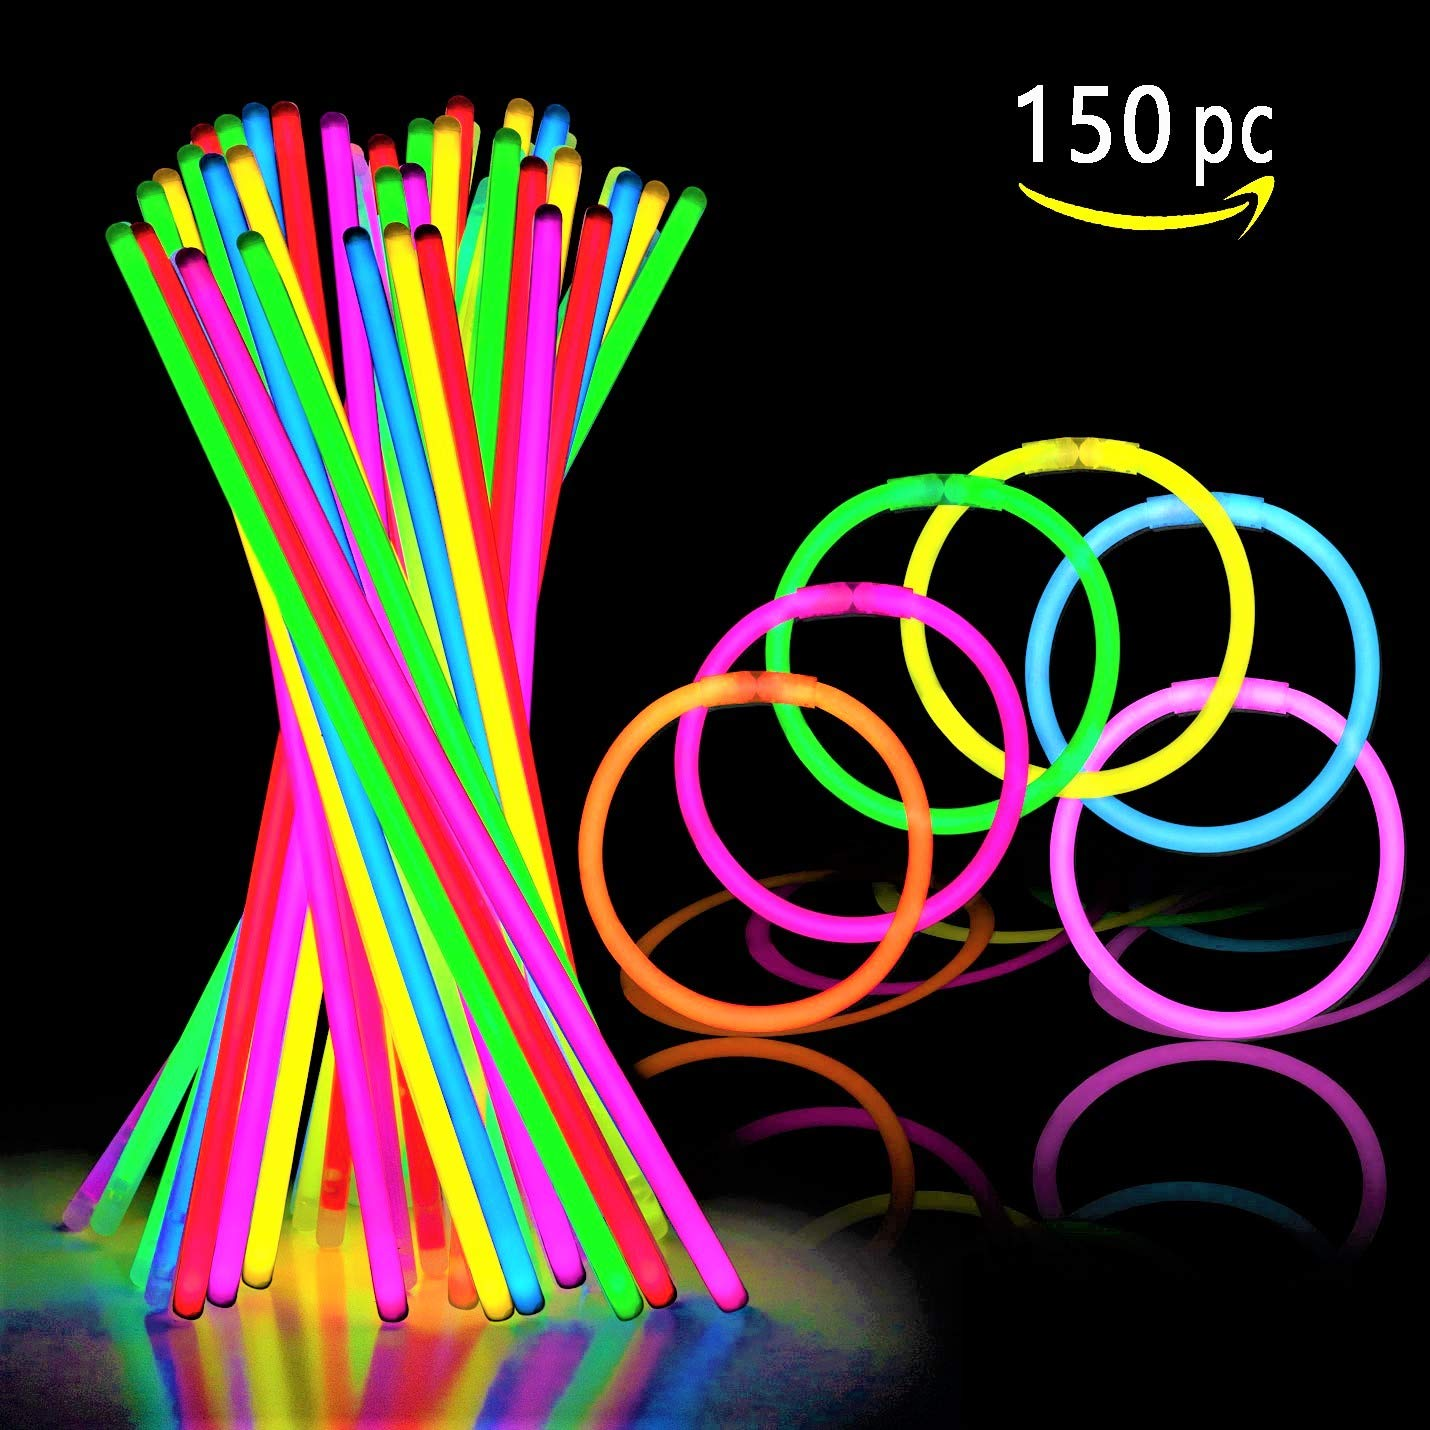 150 Ultra Bright Glow Sticks - Total 300 Pcs - 8'' Necklaces And Bracelets Glow Stick With Connectors - Bulk Party Pack Ultra Bright Glowsticks - 10 Hour Duration - Mixed Colors In 3 Tubes by Glowing U.S. inc (Image #4)